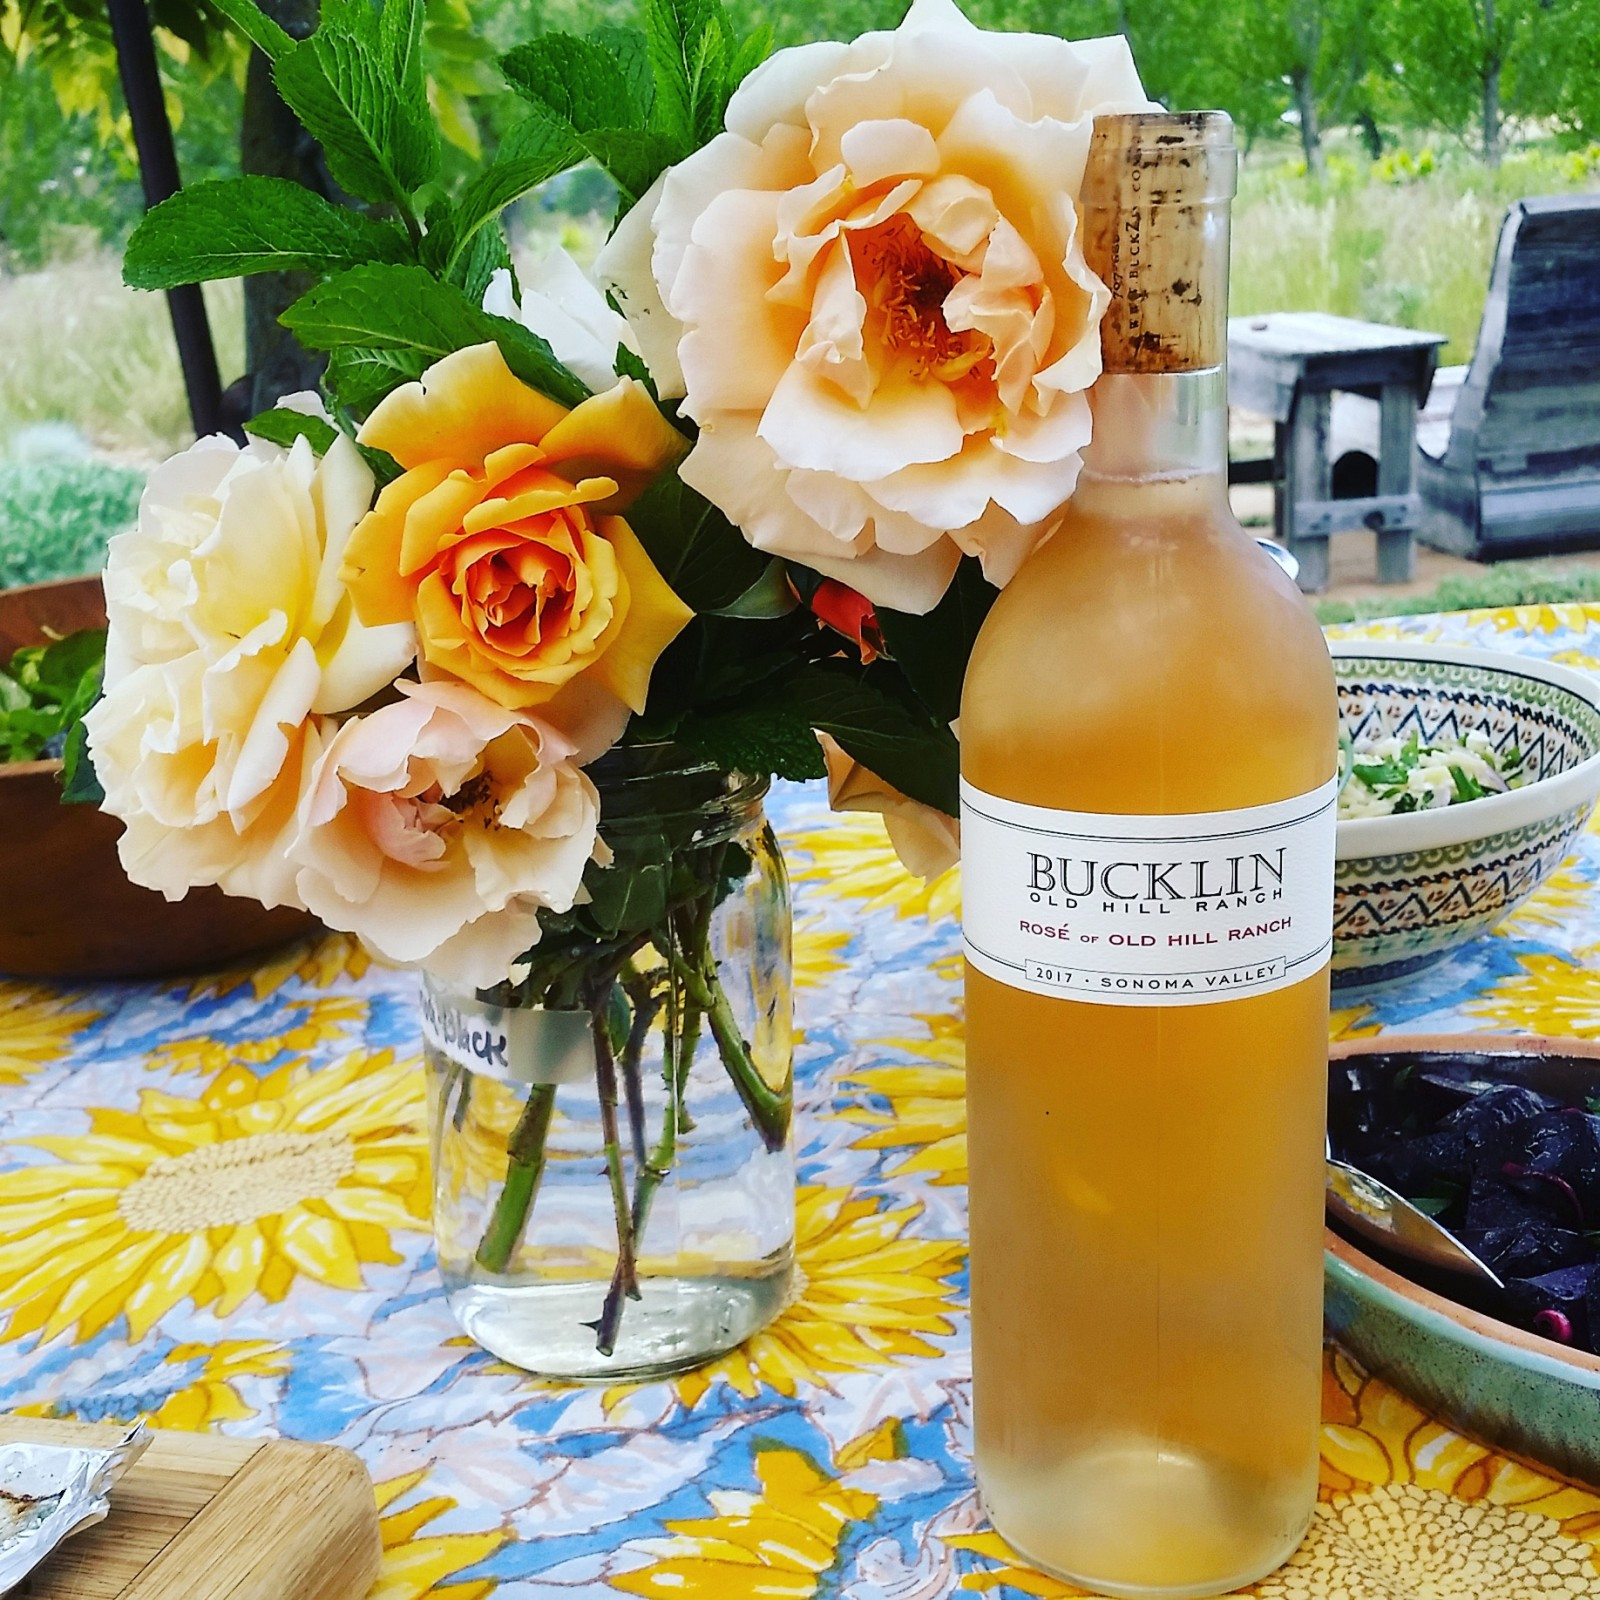 2018 Rosé of Old Hill Ranch  - Bucklin Old Hill Ranch